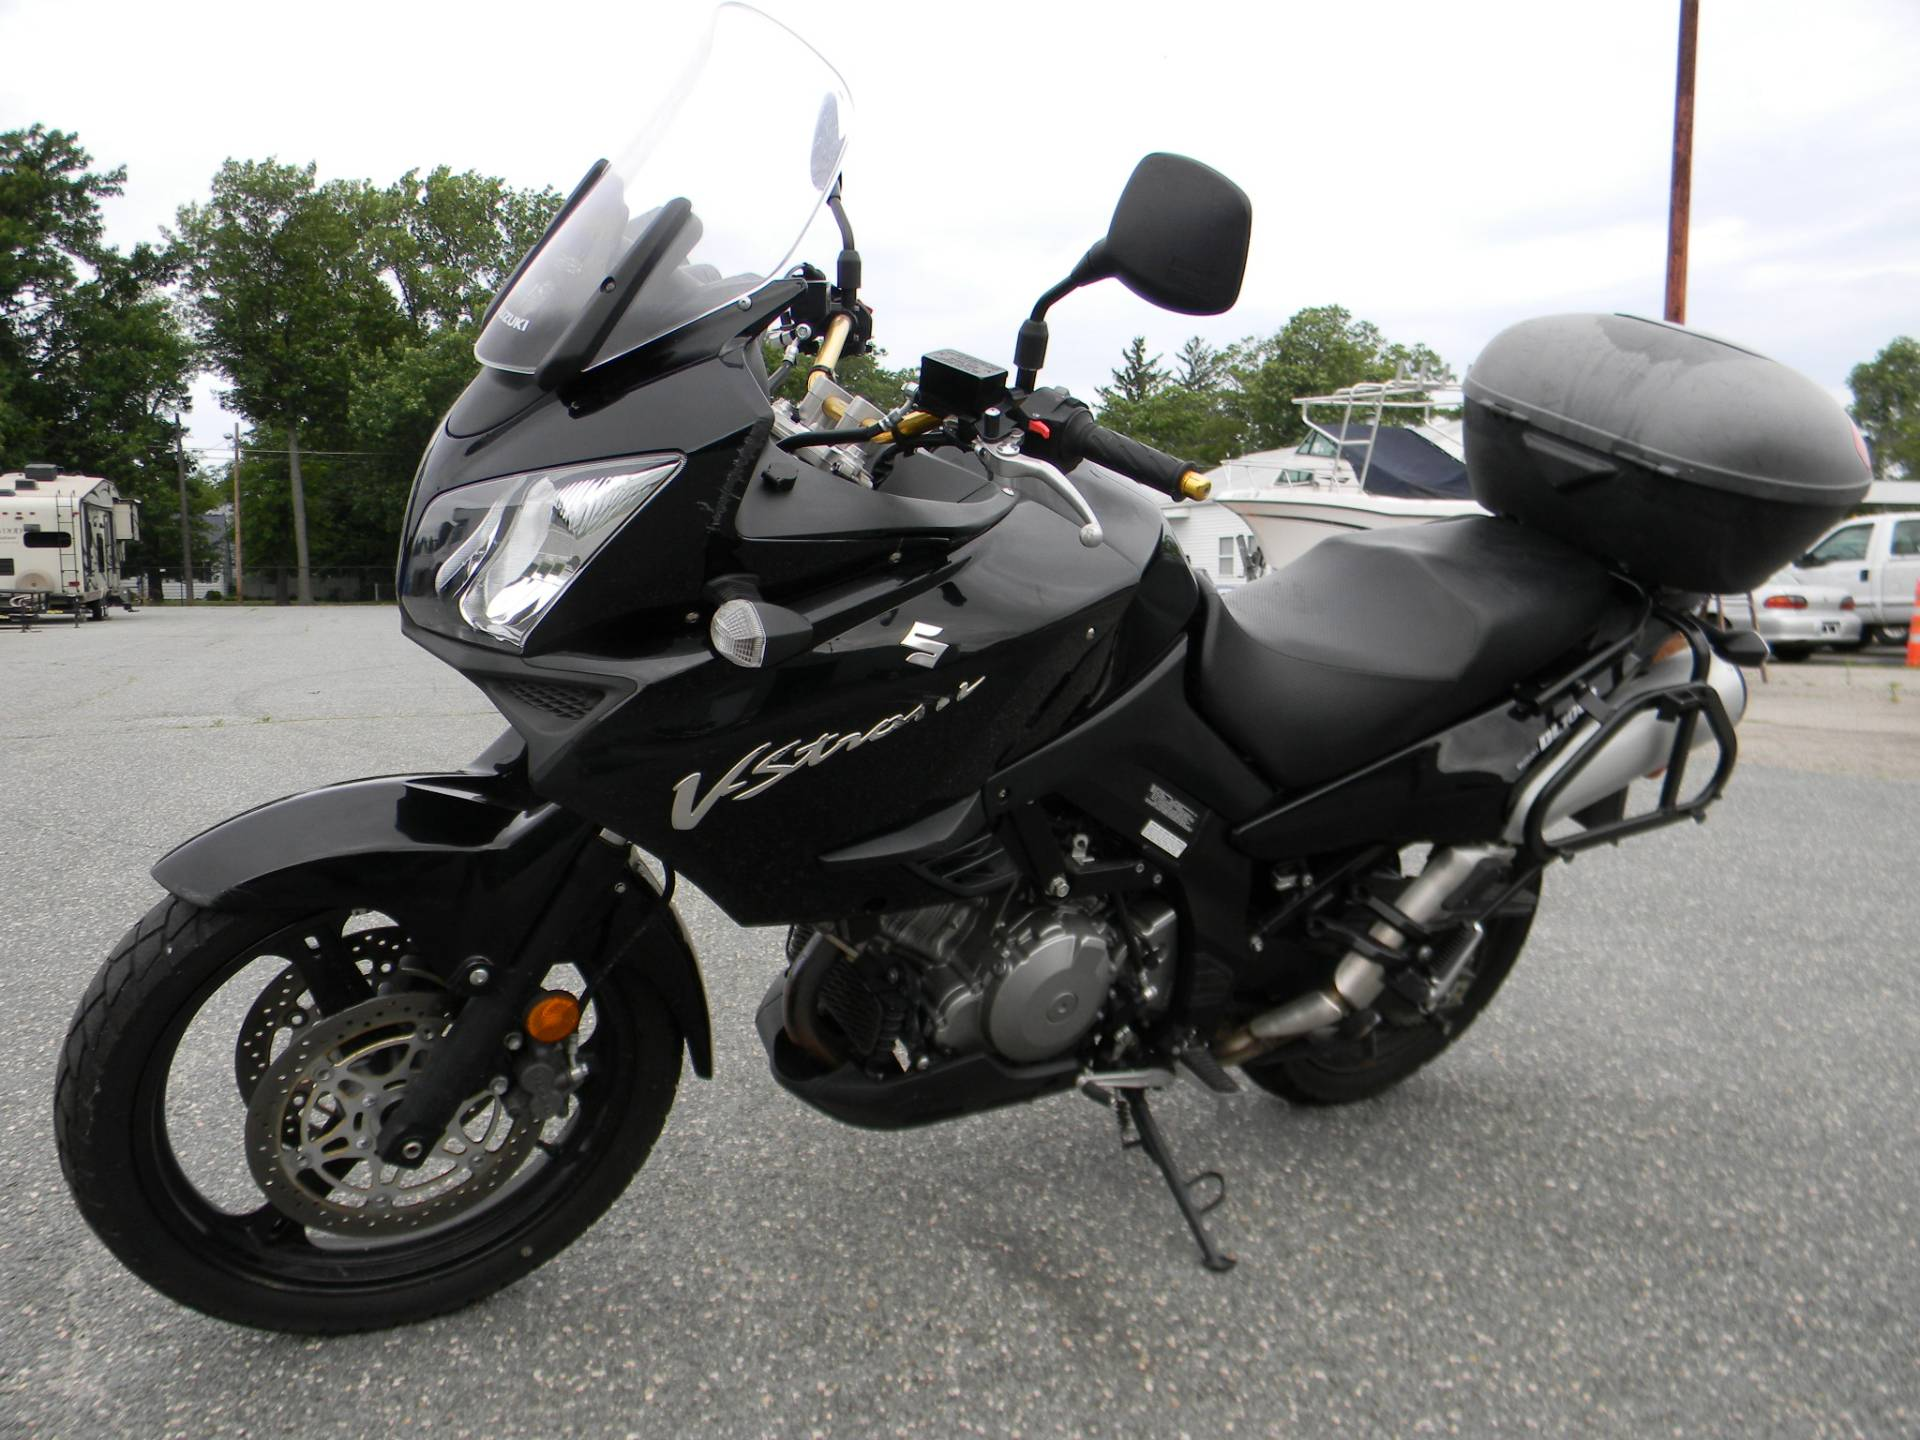 2012 Suzuki V-Strom 1000 in Springfield, Massachusetts